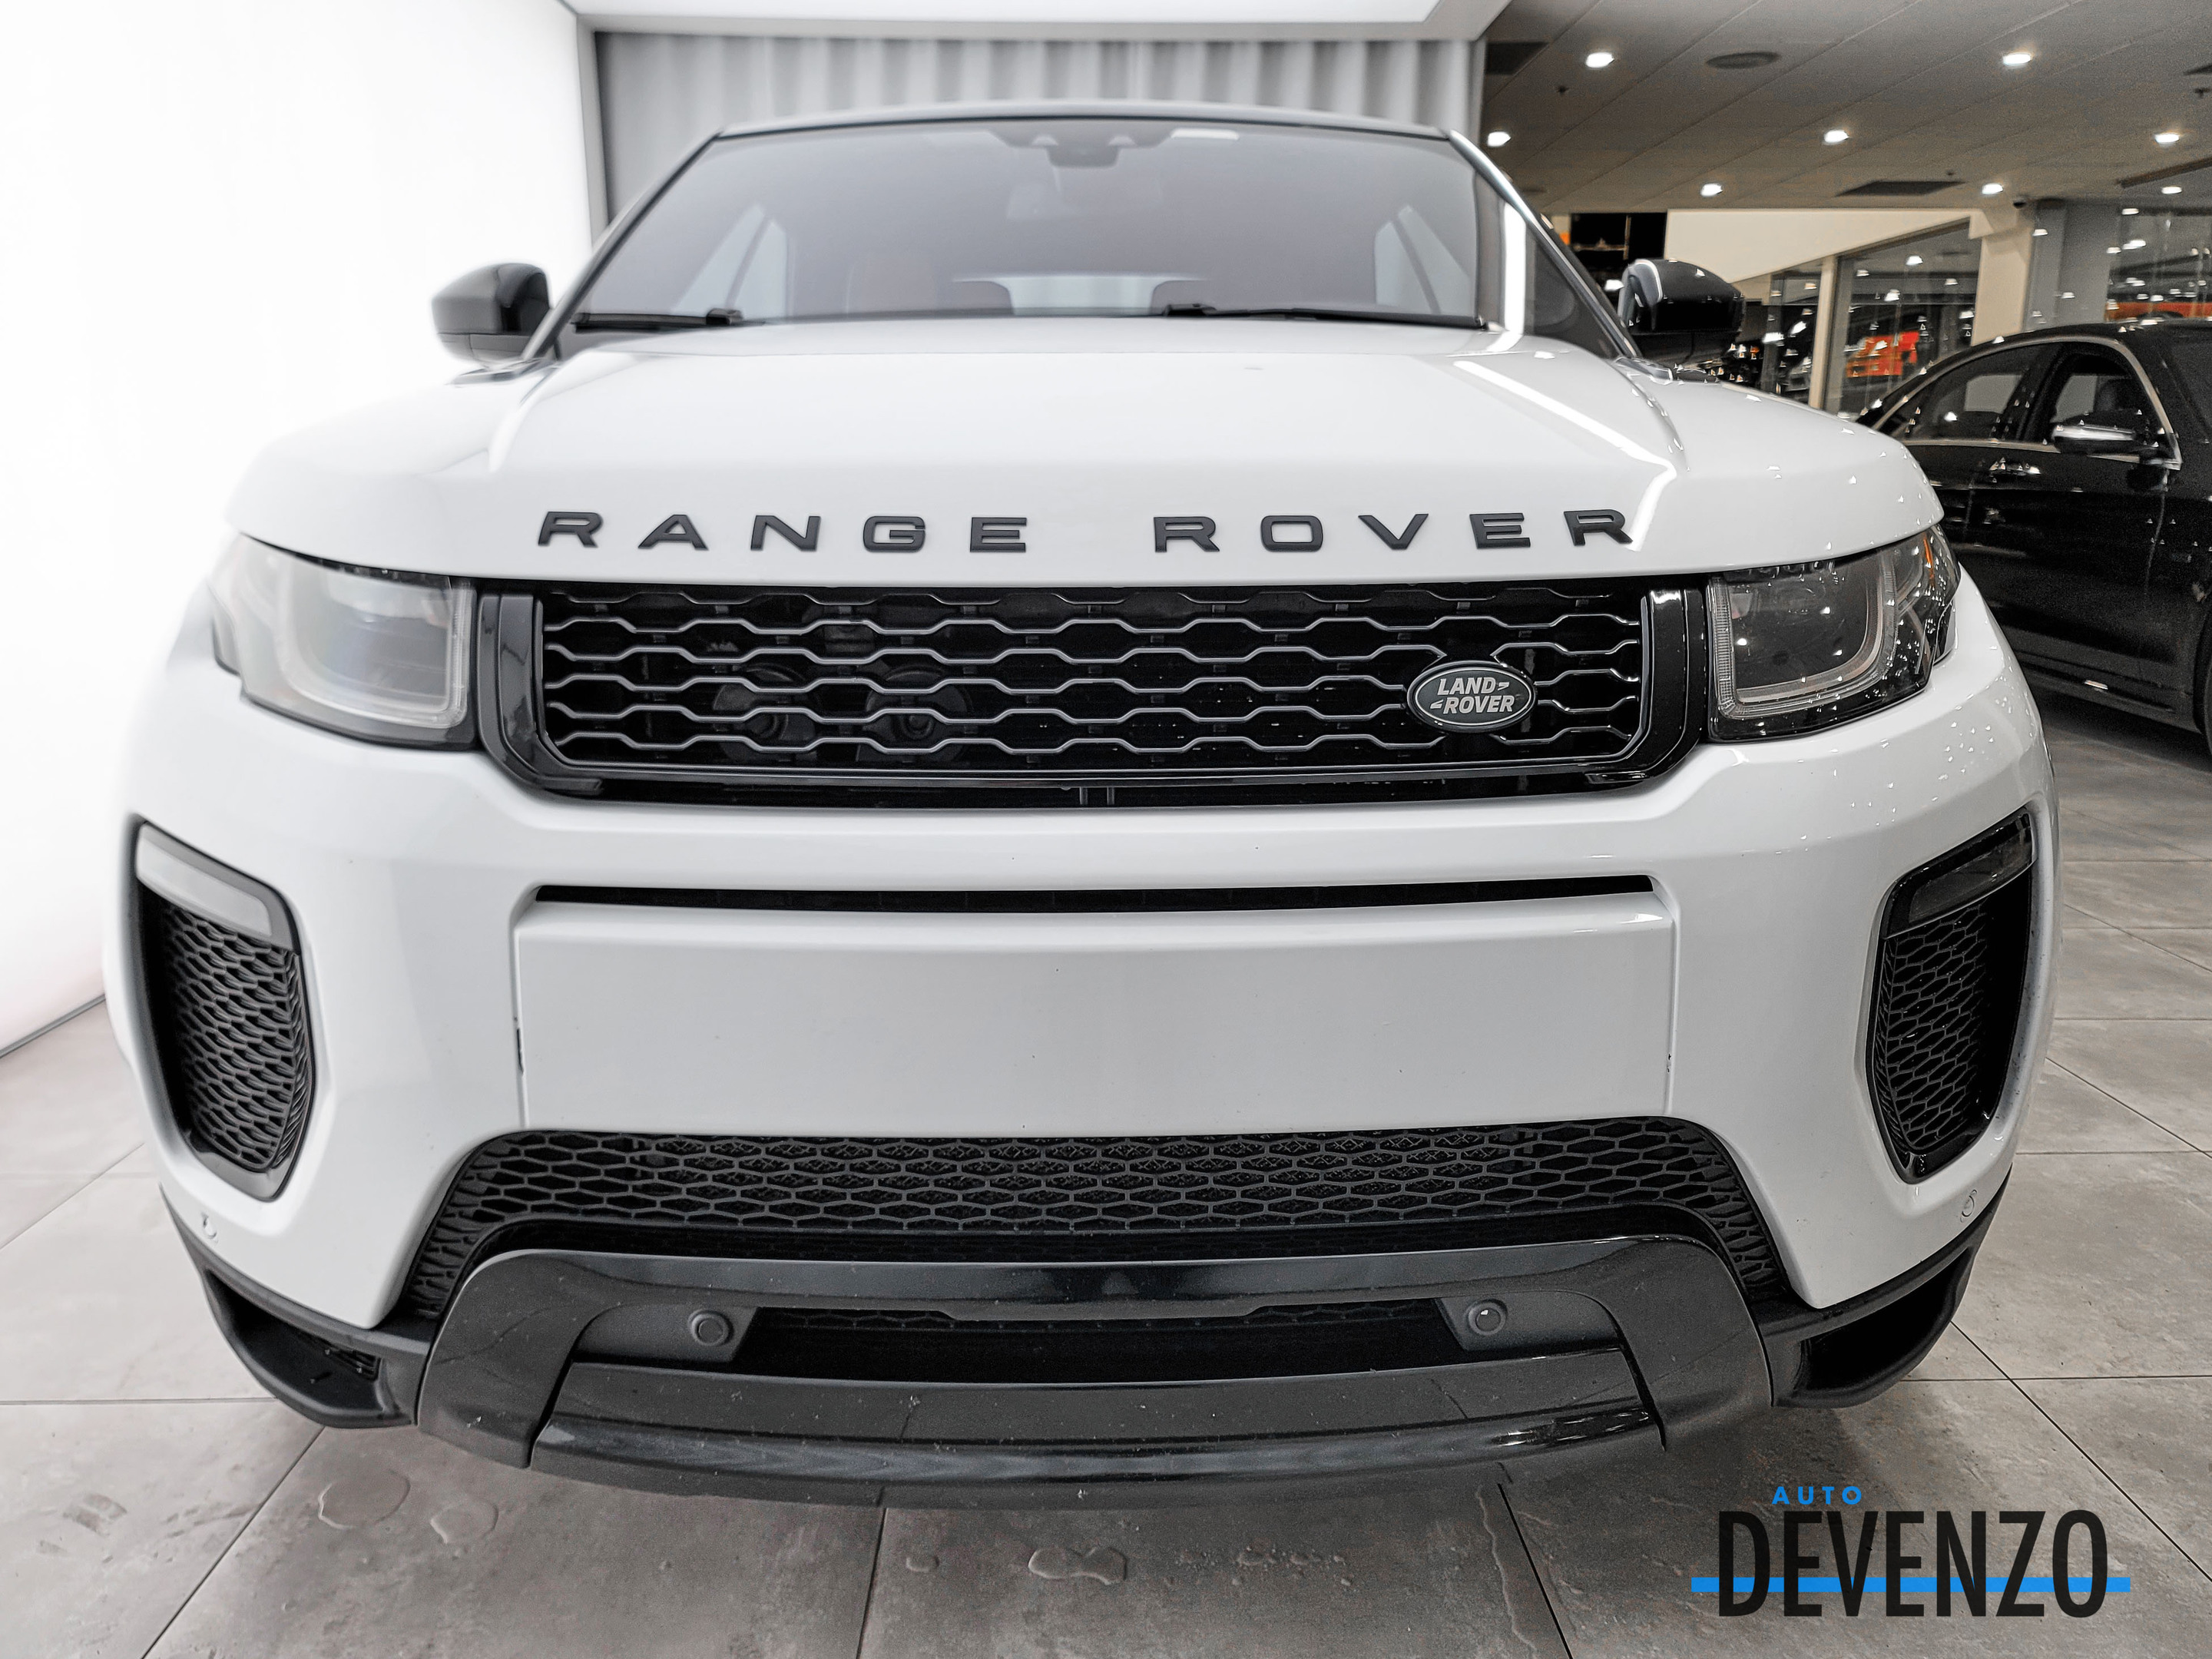 2017 Land Rover Range Rover Evoque Convertible HSE Dynamic Black Package complet